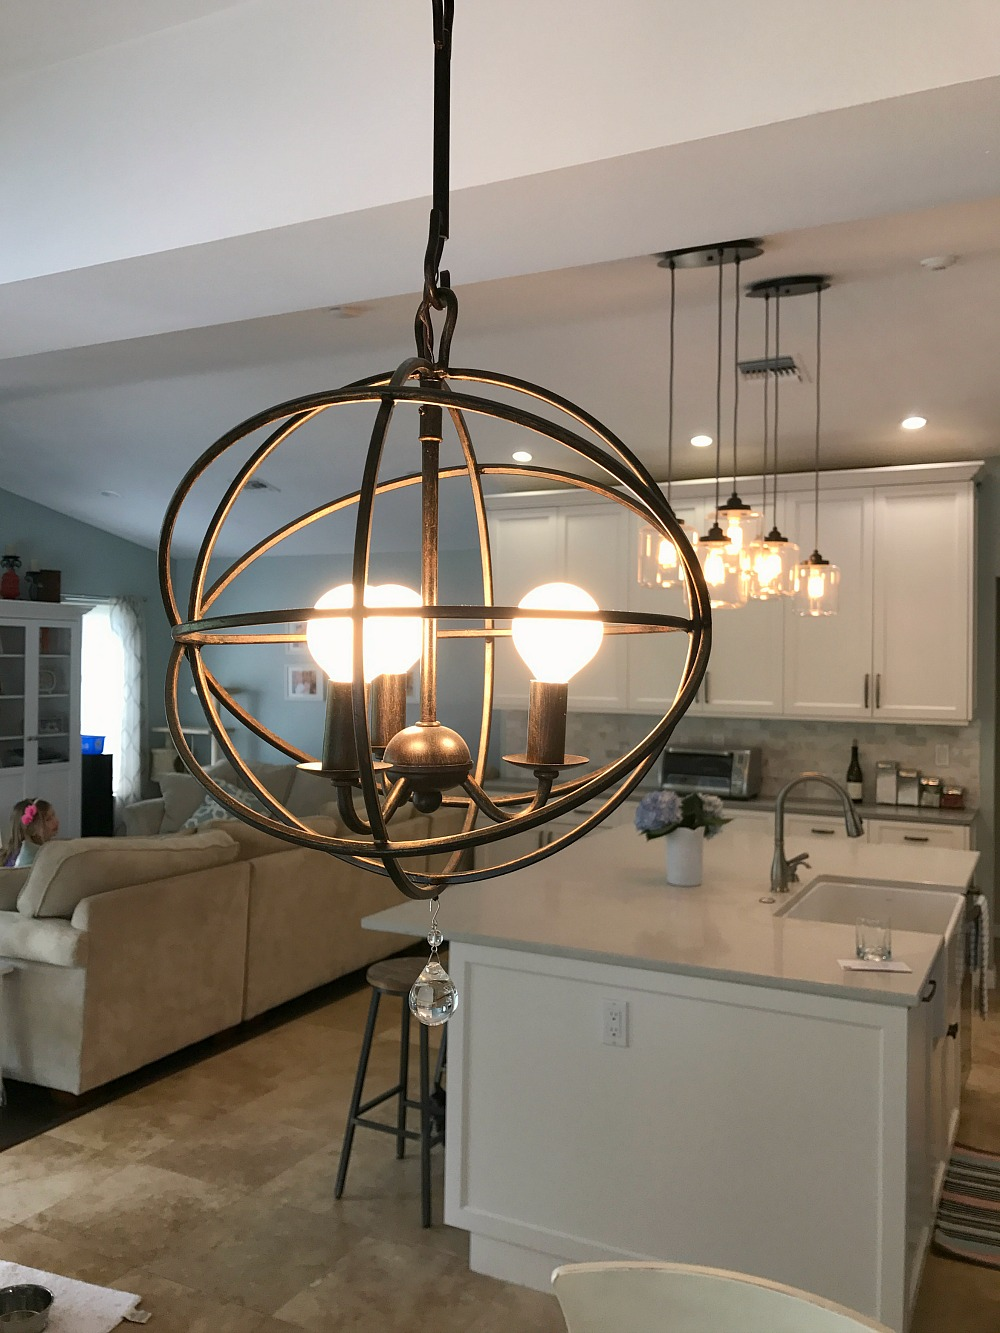 Modern farmhouse kitchen reveal kristen hewitt for Farmhouse style kitchen lighting